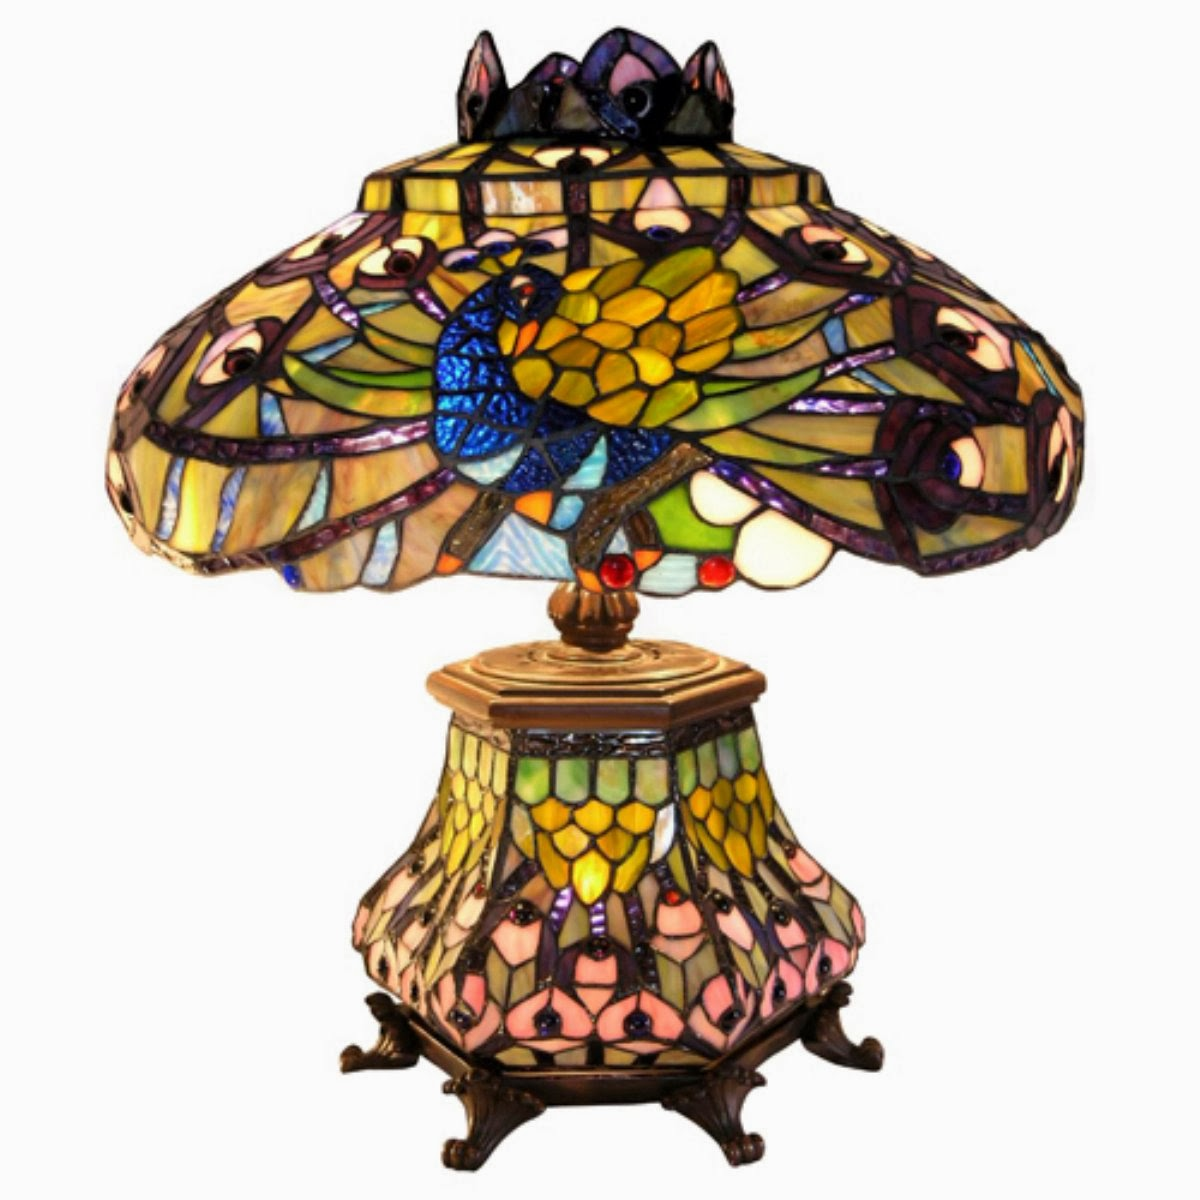 tiffany style peacock lantern table lamp luxury light fixtures and. Black Bedroom Furniture Sets. Home Design Ideas